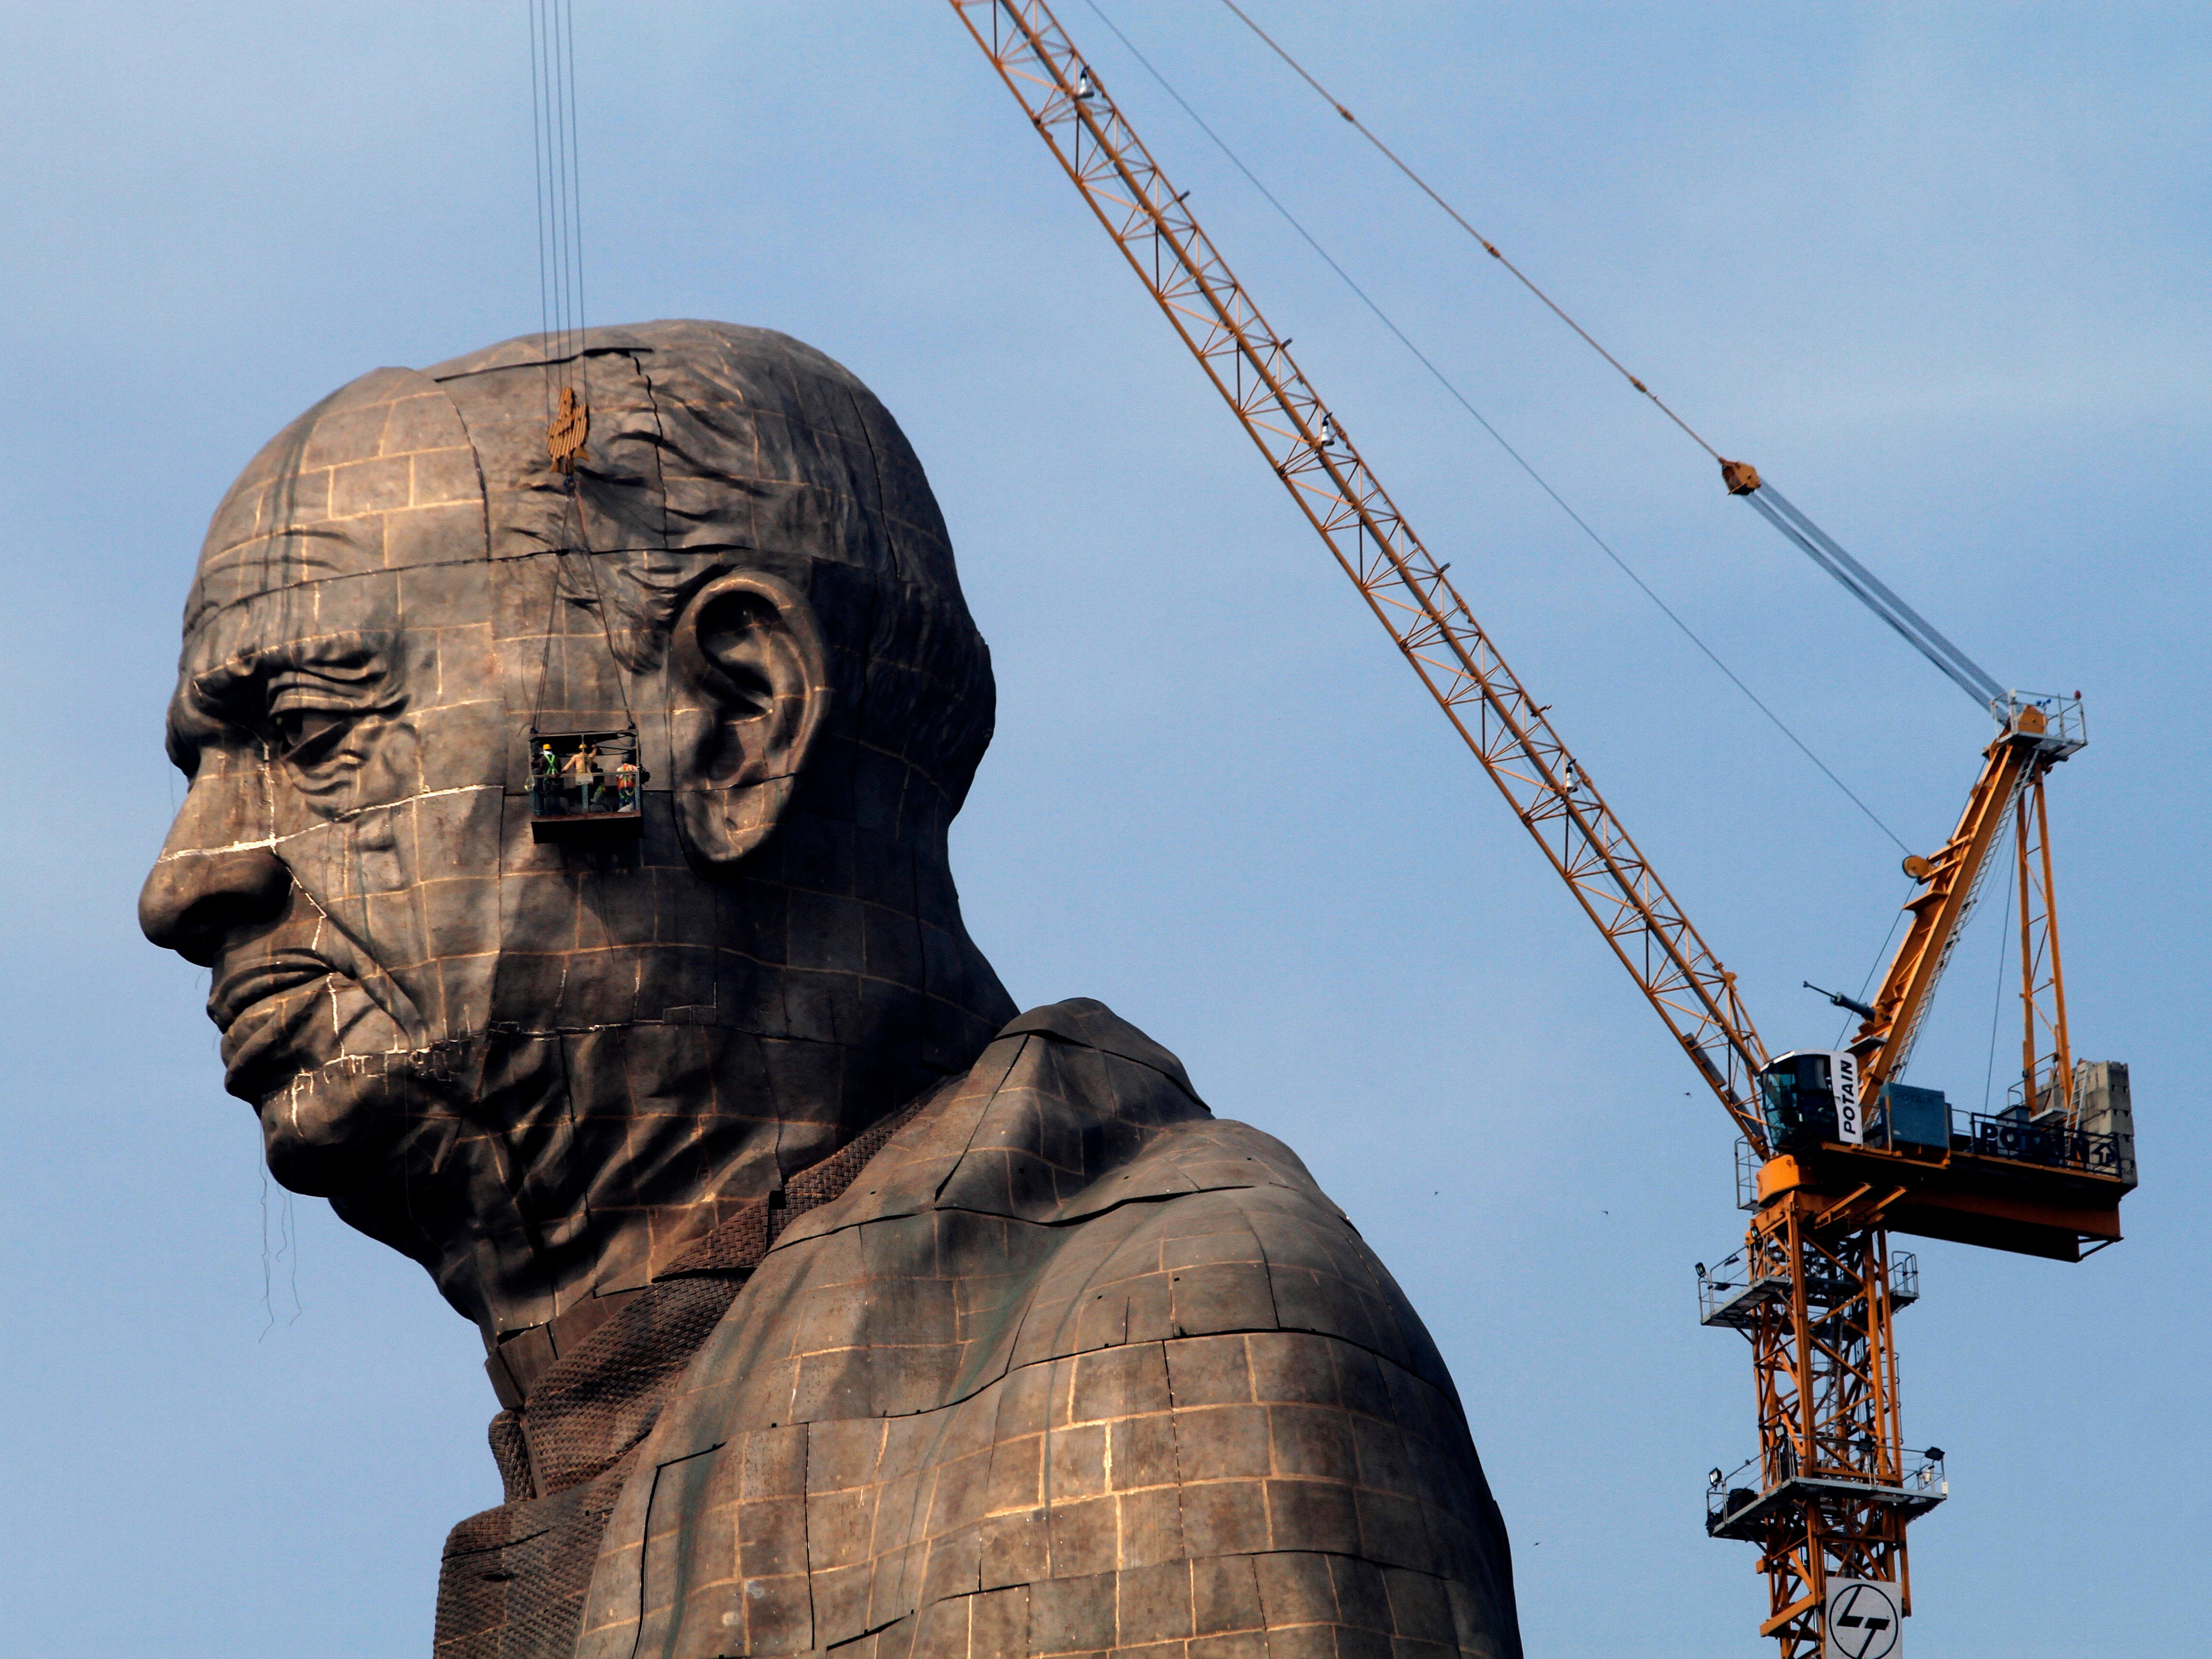 The under-construction Statue of Unity stands facing Sardar Sarovar Dam at Kevadiya Colony, India, Thursday, Oct. 18, 2018. The tribute to Indian freedom fighter Sardar Vallabhbhai Patel will be inaugurated on Oct. 31 by Prime Minister Narendra Modi, and is slated to be the one of the world's tallest statues.